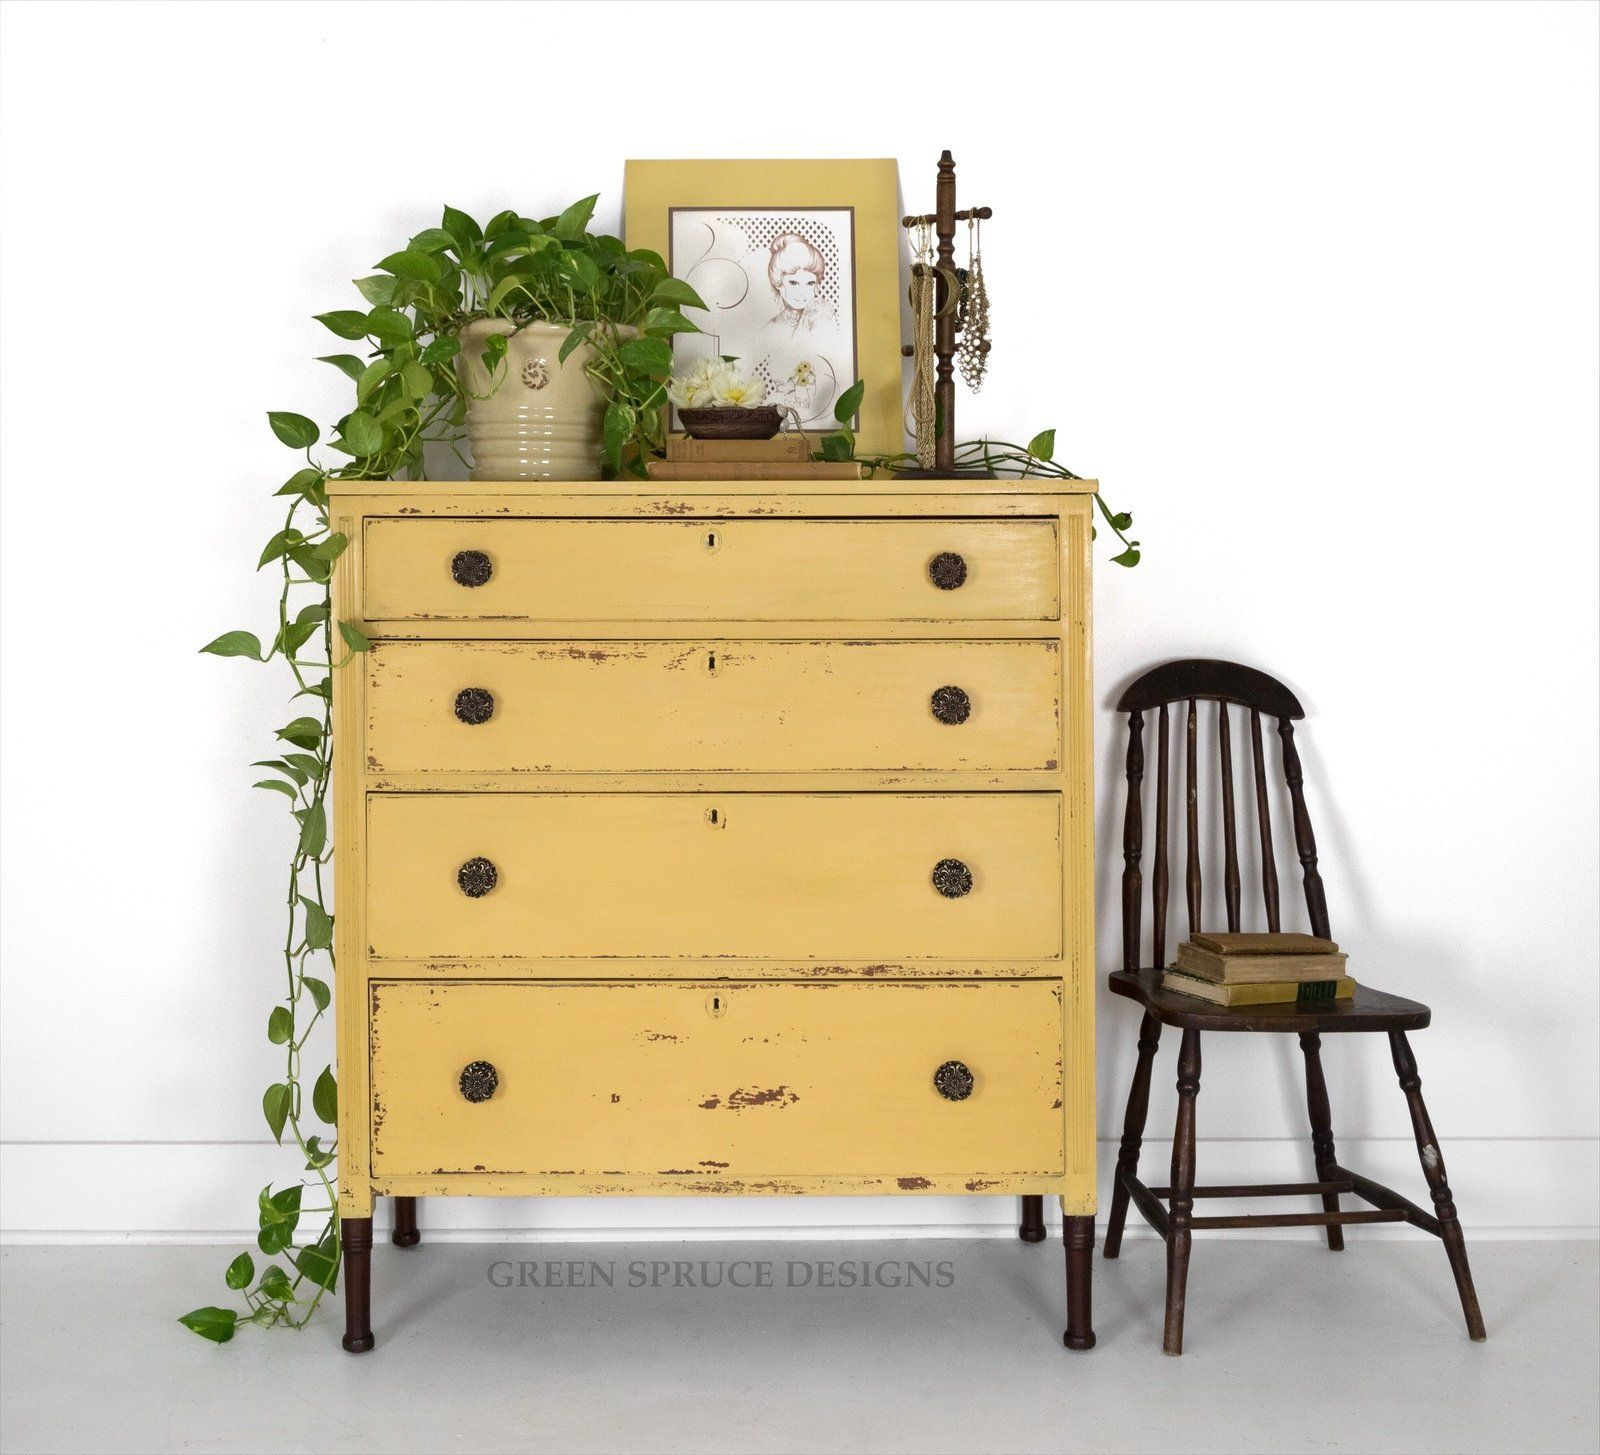 Available Antique Chest Of Drawers Antique Yellow Dresser Chippy Milk Painted Dresser Four Drawer Shab Yellow Painted Furniture Yellow Furniture Yellow Dresser